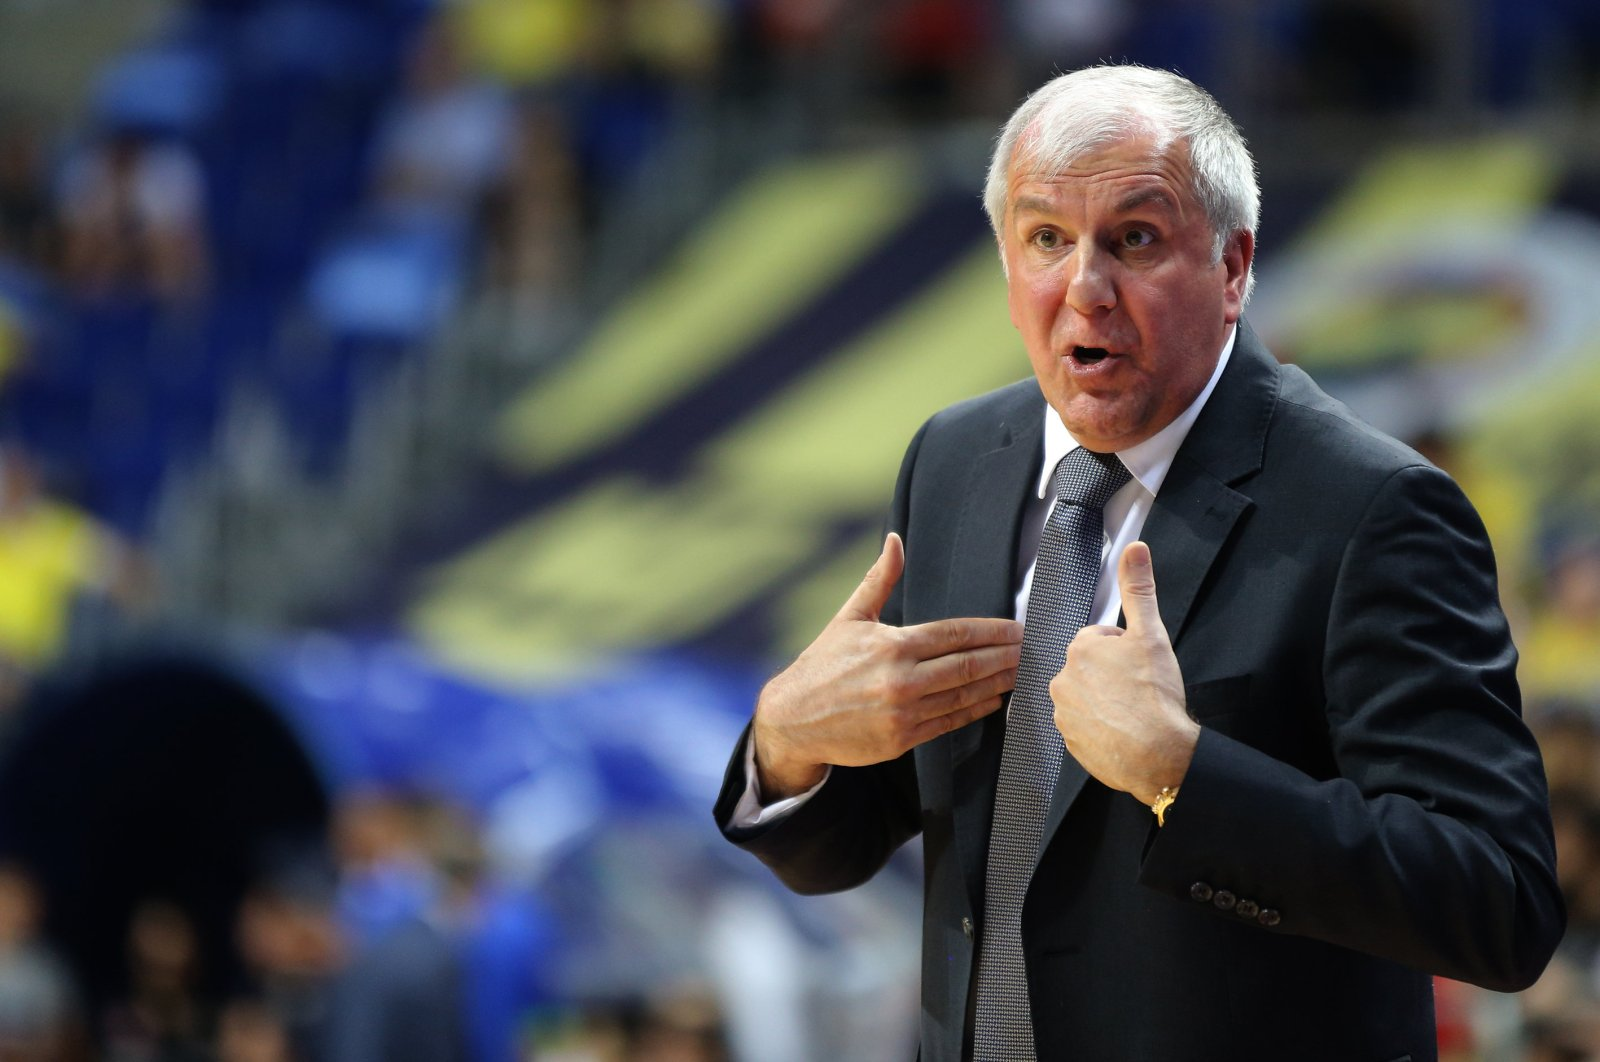 Zeljko Obradovic reacts during a Turkish Basketball League match in Istanbul, Turkey, June 5, 2019. (AA Photo)